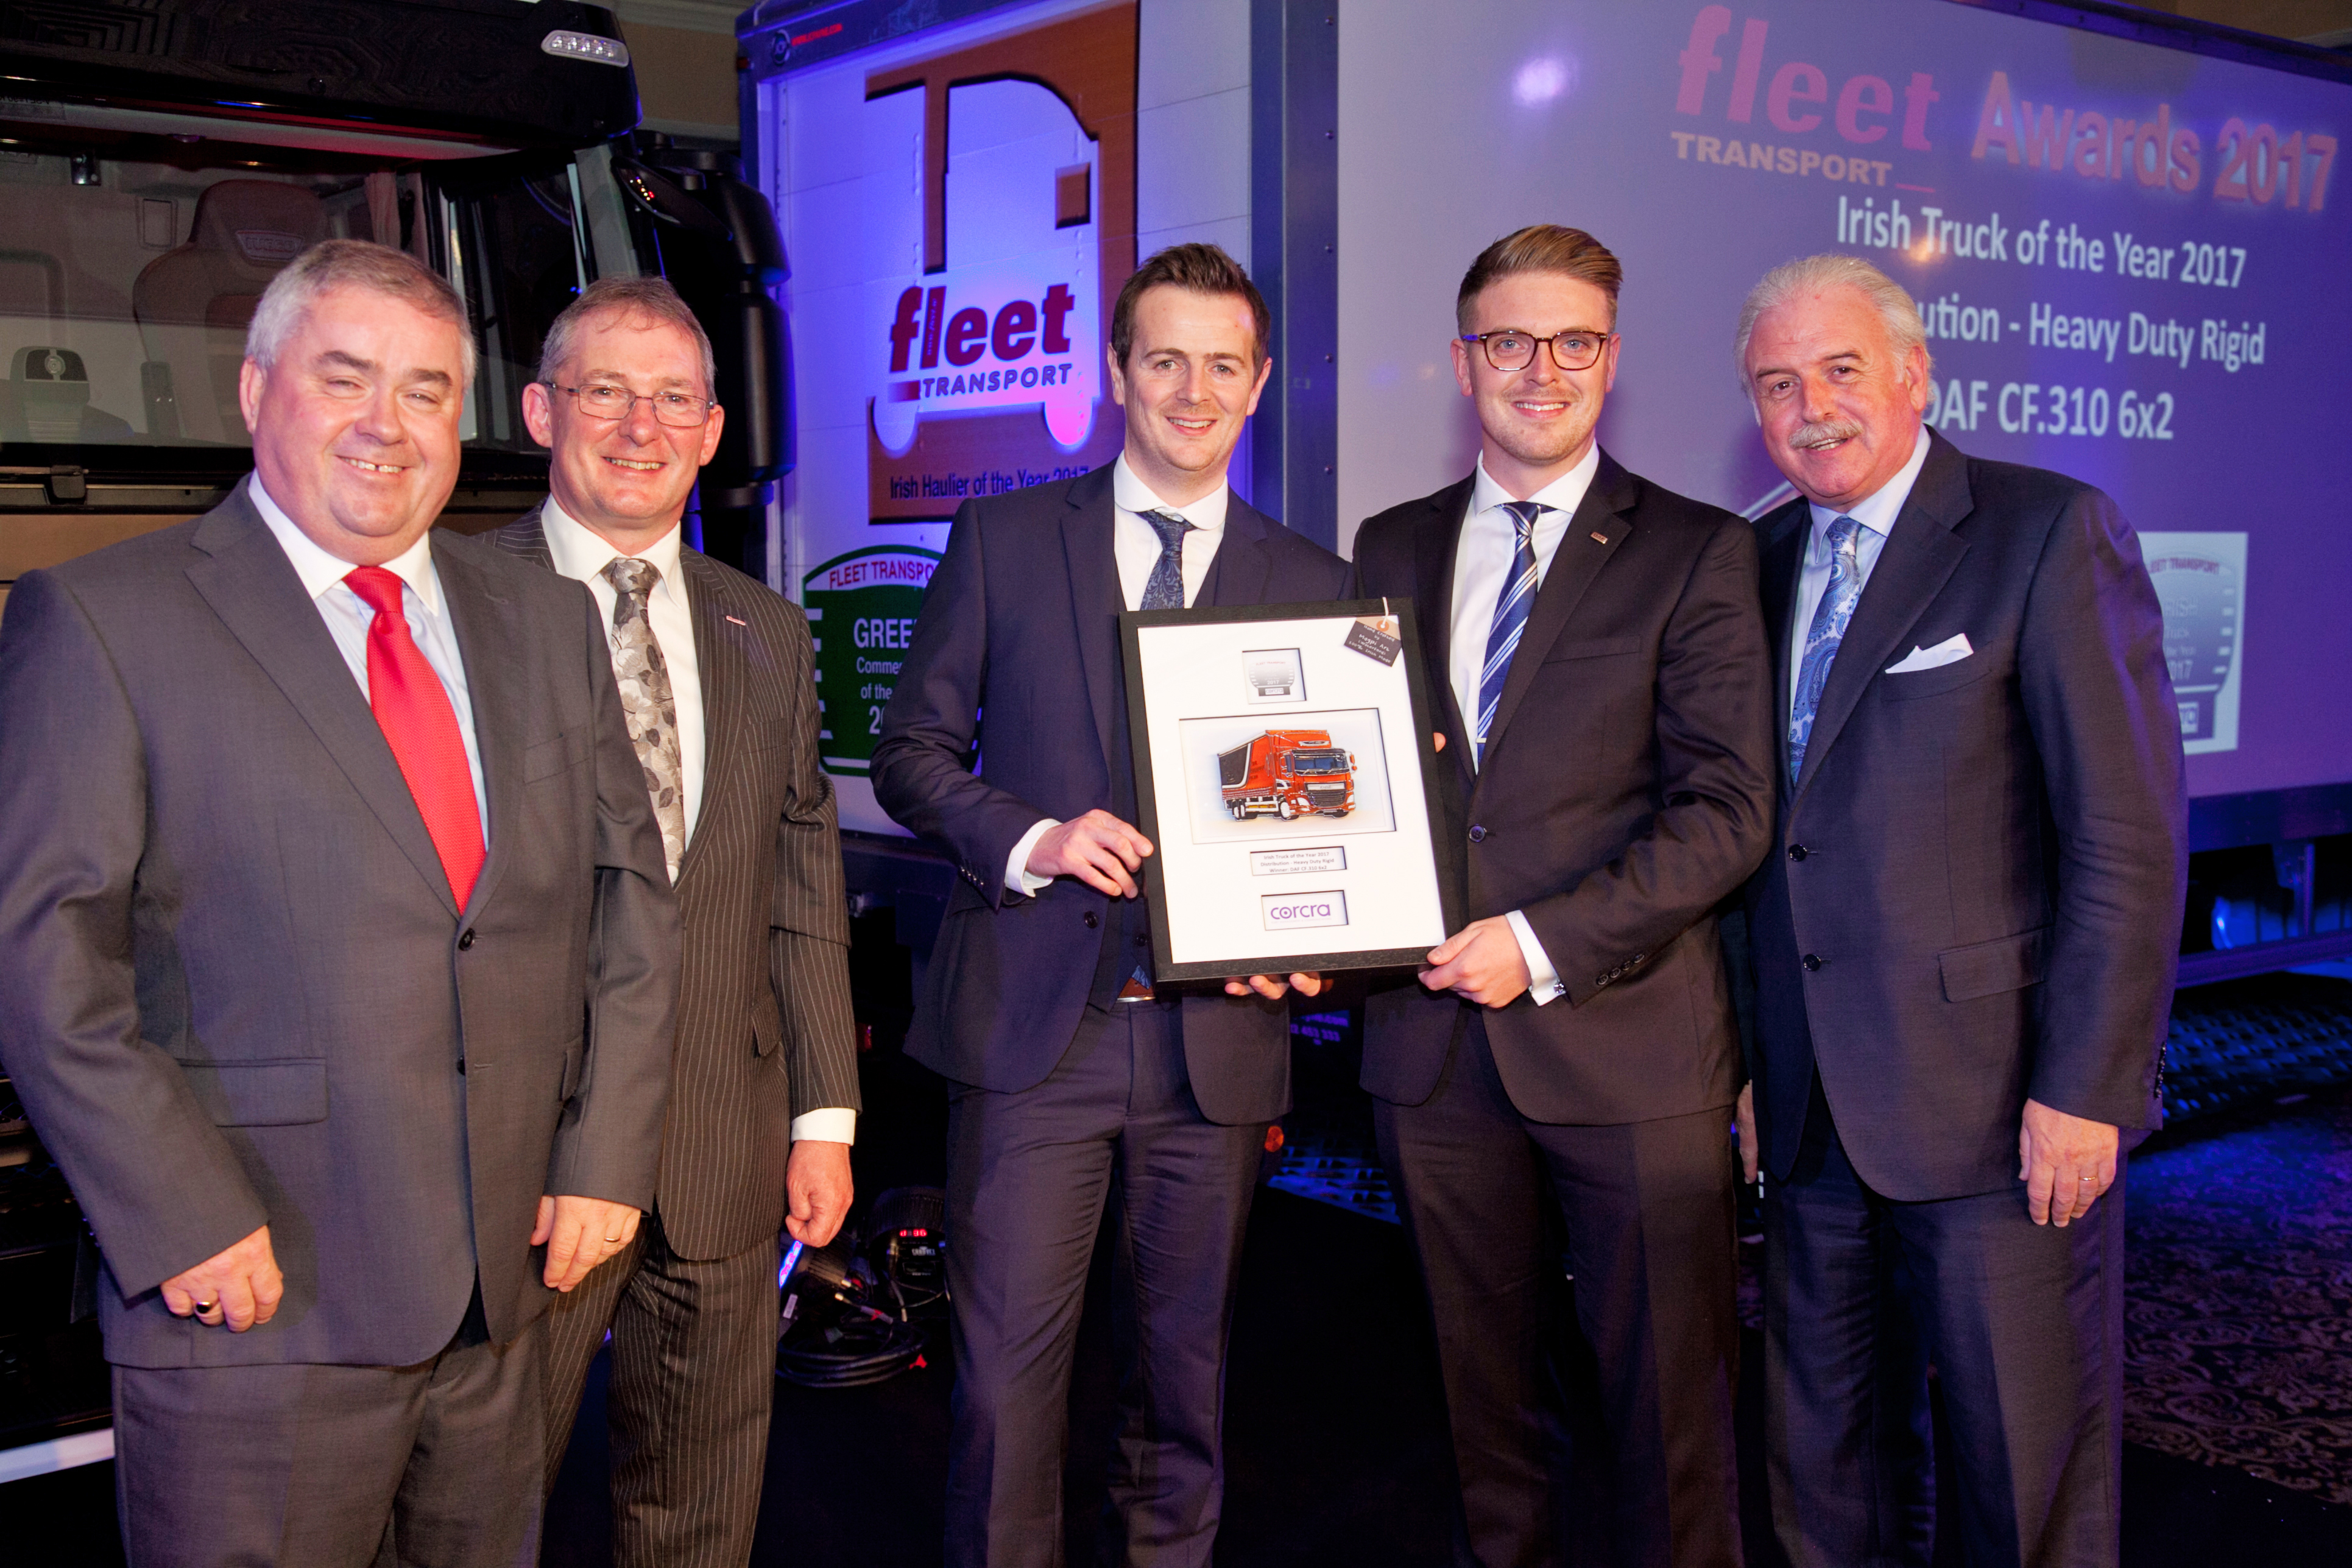 DAF-XF-awarded-Fleet-Truck-of-the-Year